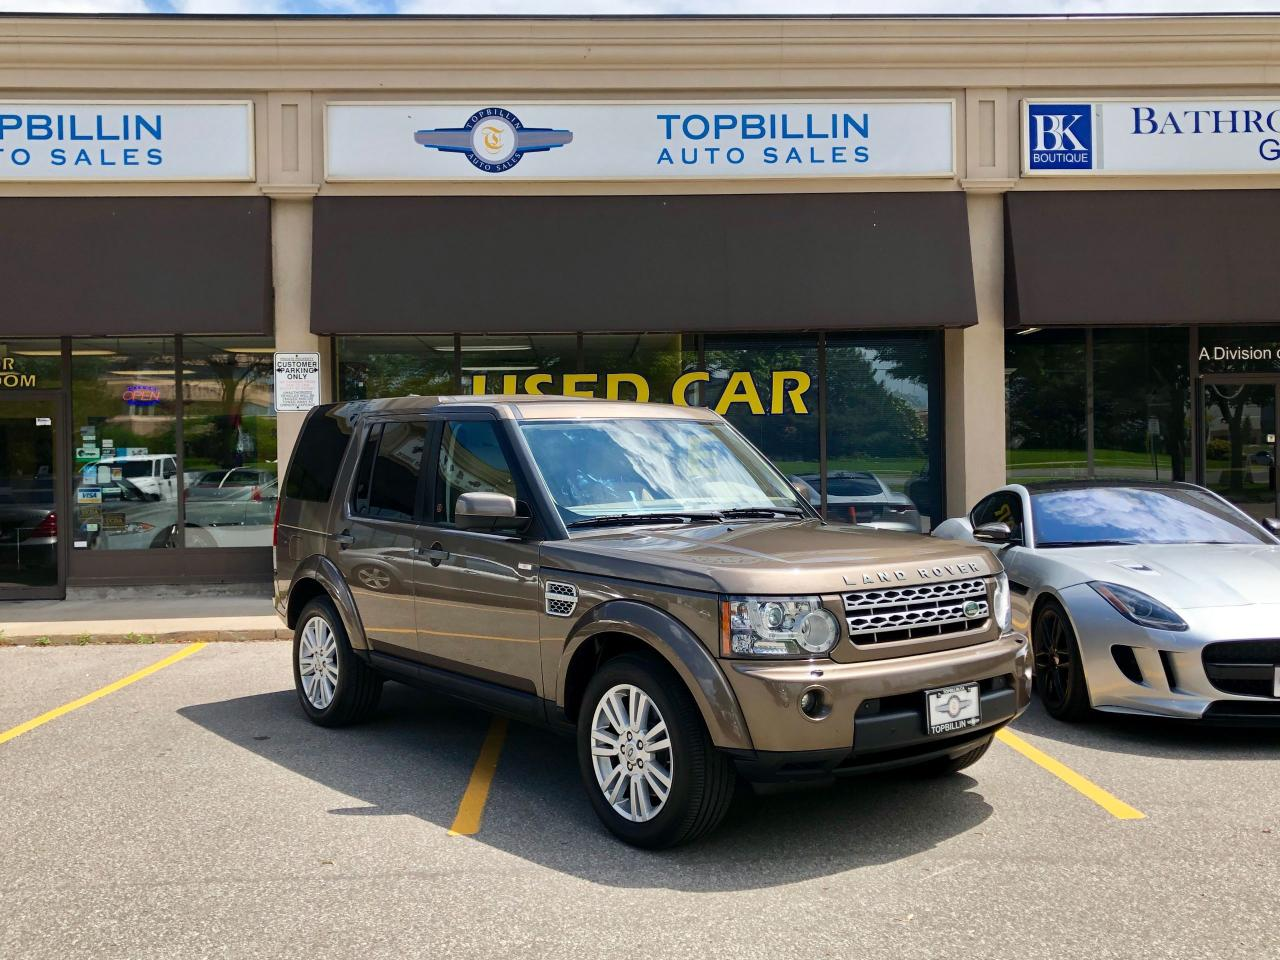 Used 2011 Land Rover Lr4 Lux 1 Owner Clean Carfax For Sale In